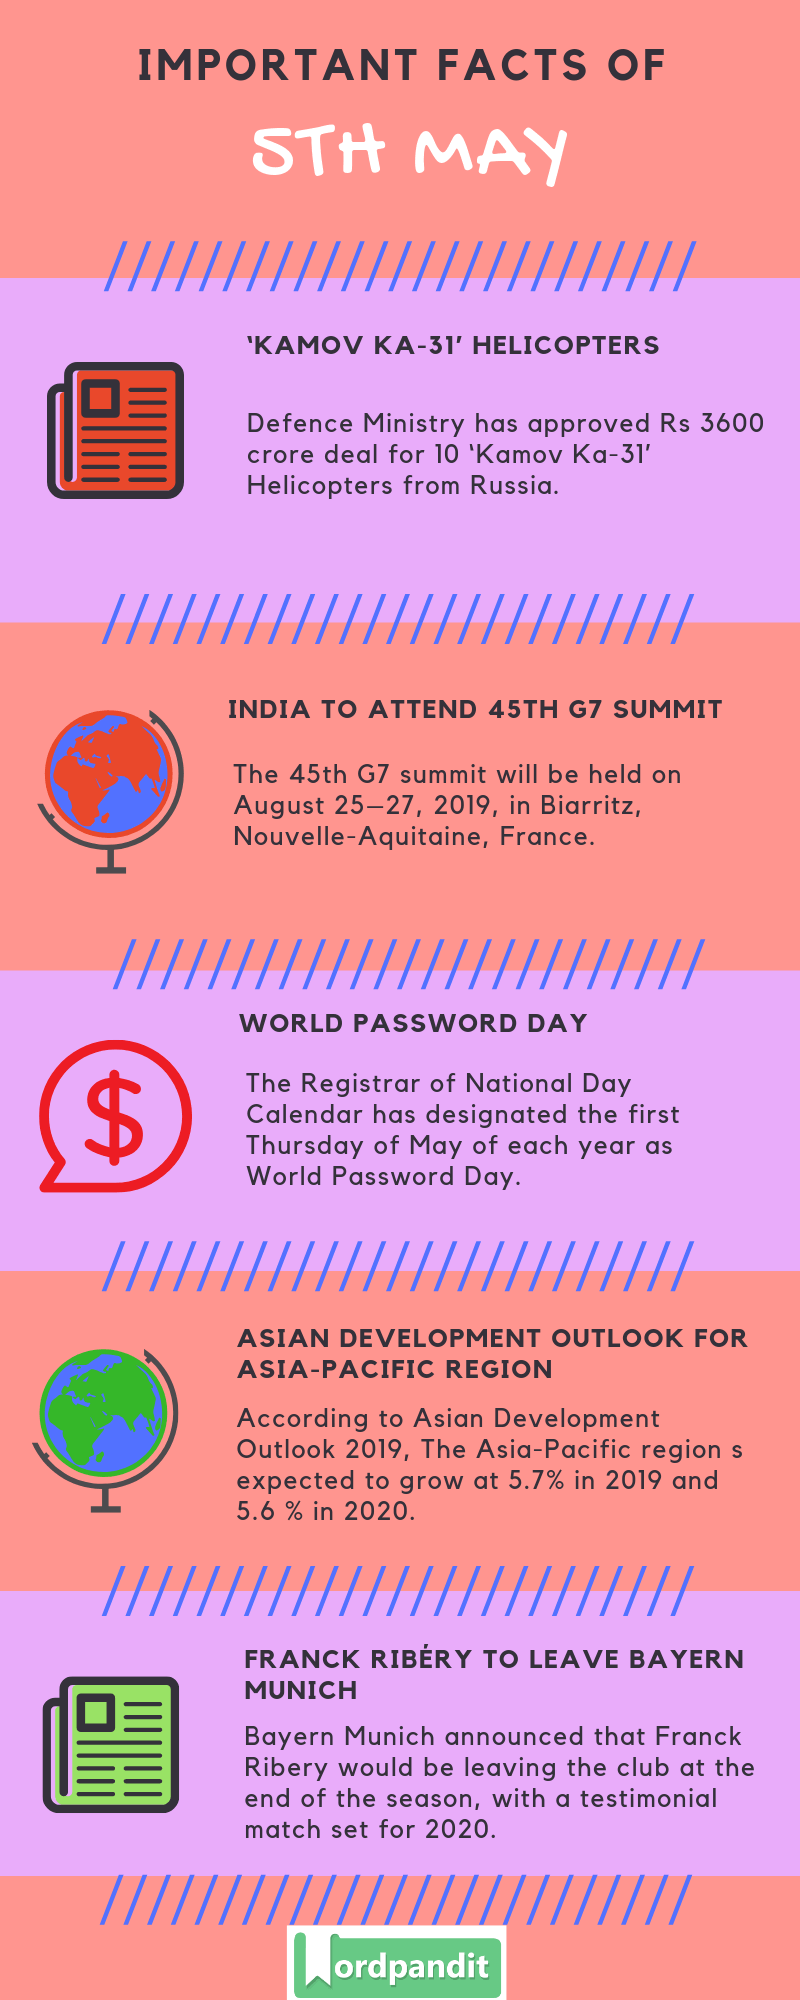 Daily Current Affairs 5 May 2019 Current Affairs Quiz 5 May 2019 Current Affairs Infographic